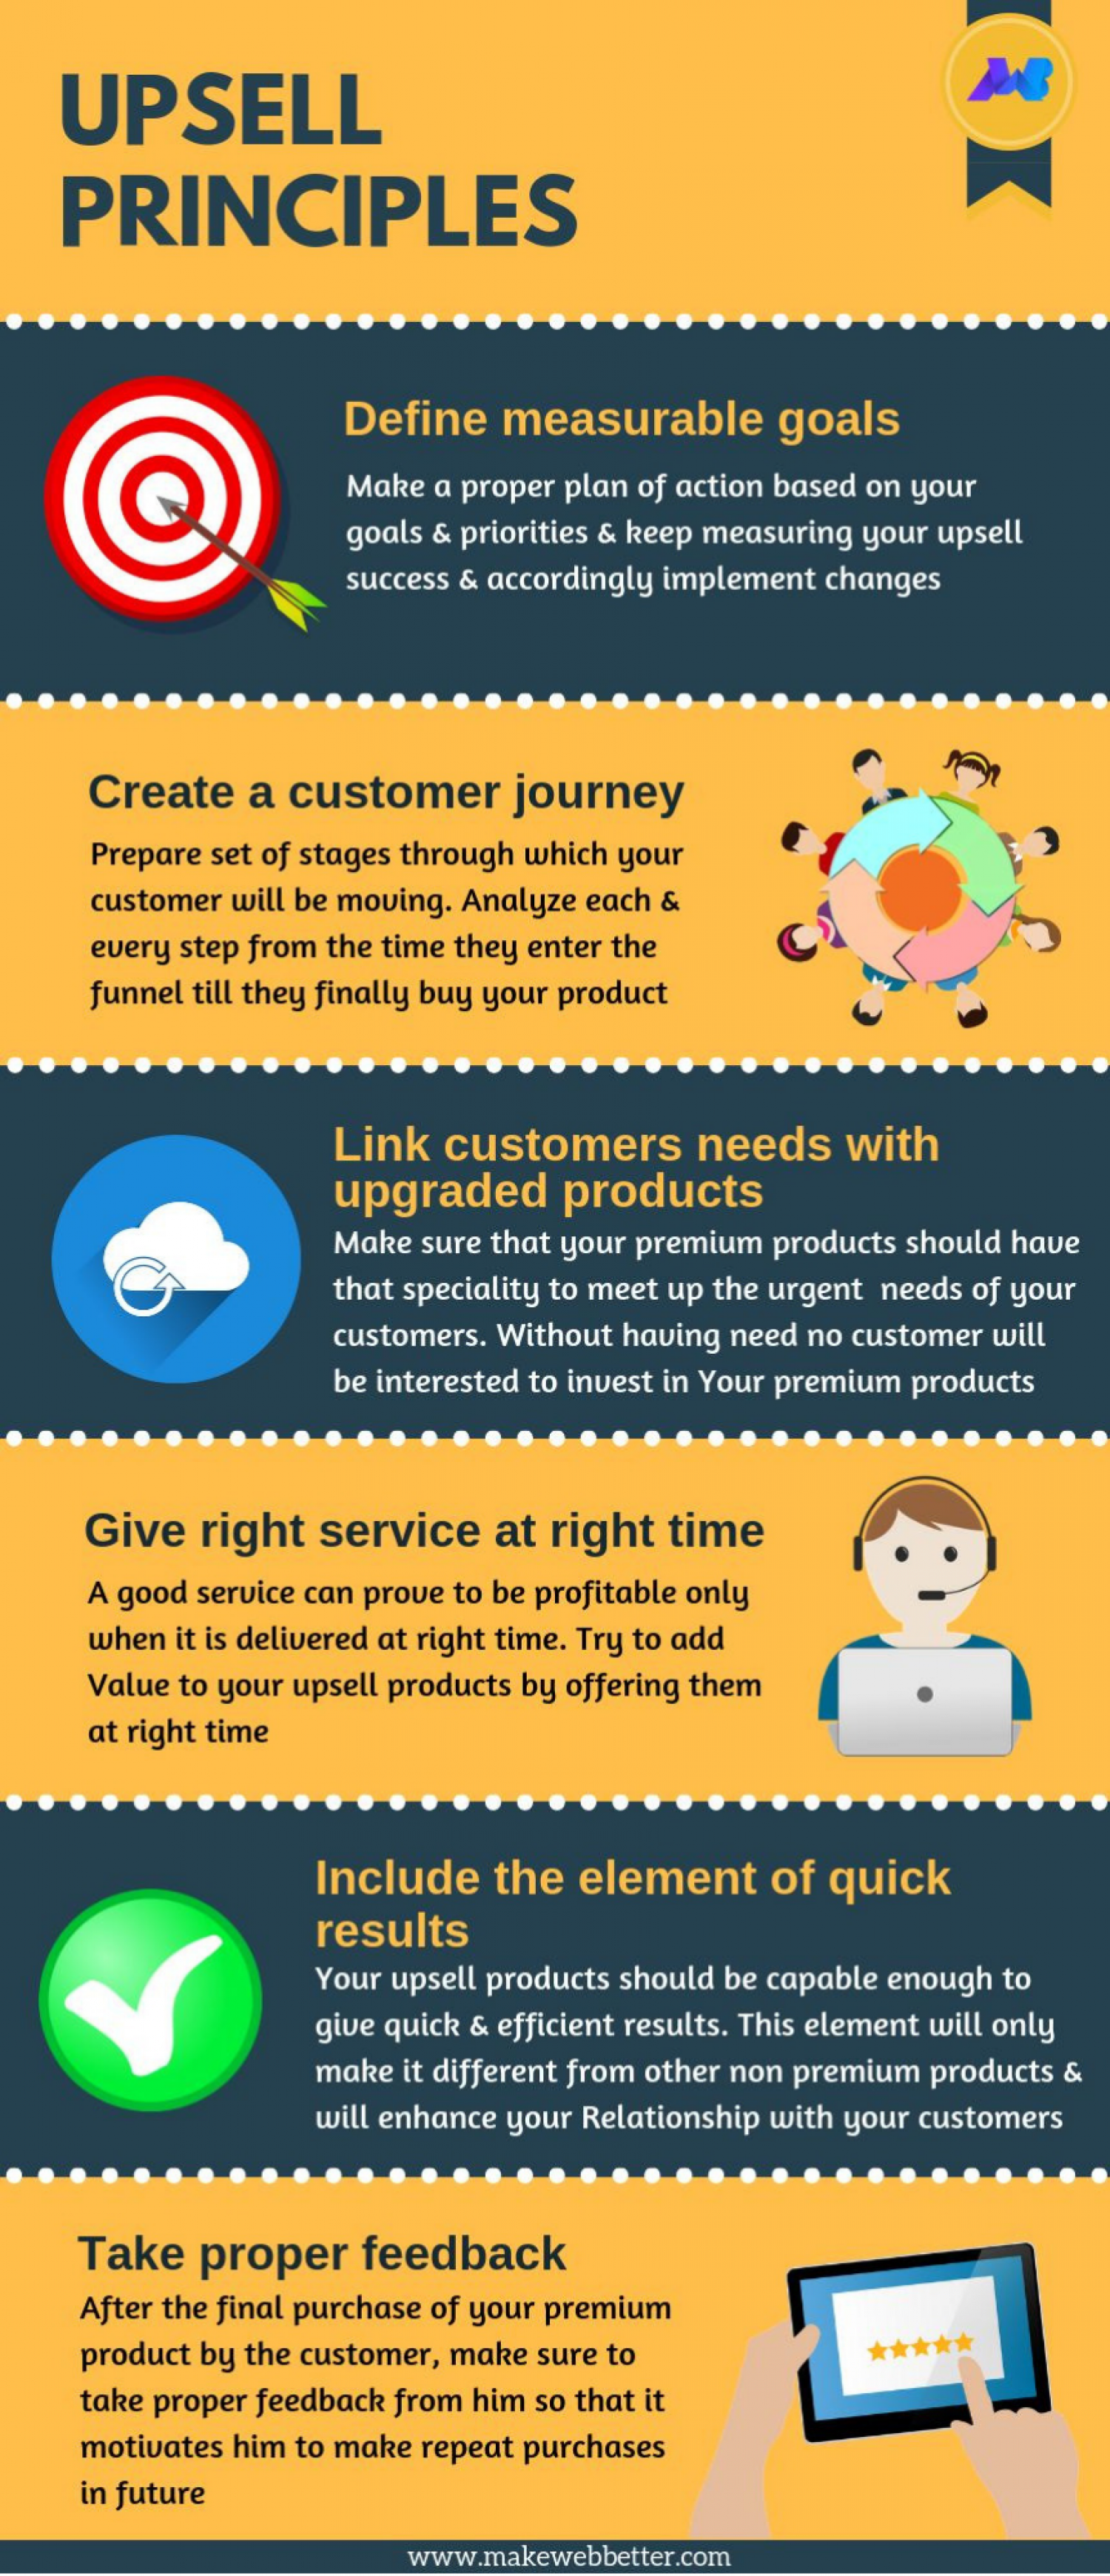 Upsell Principles Infographic